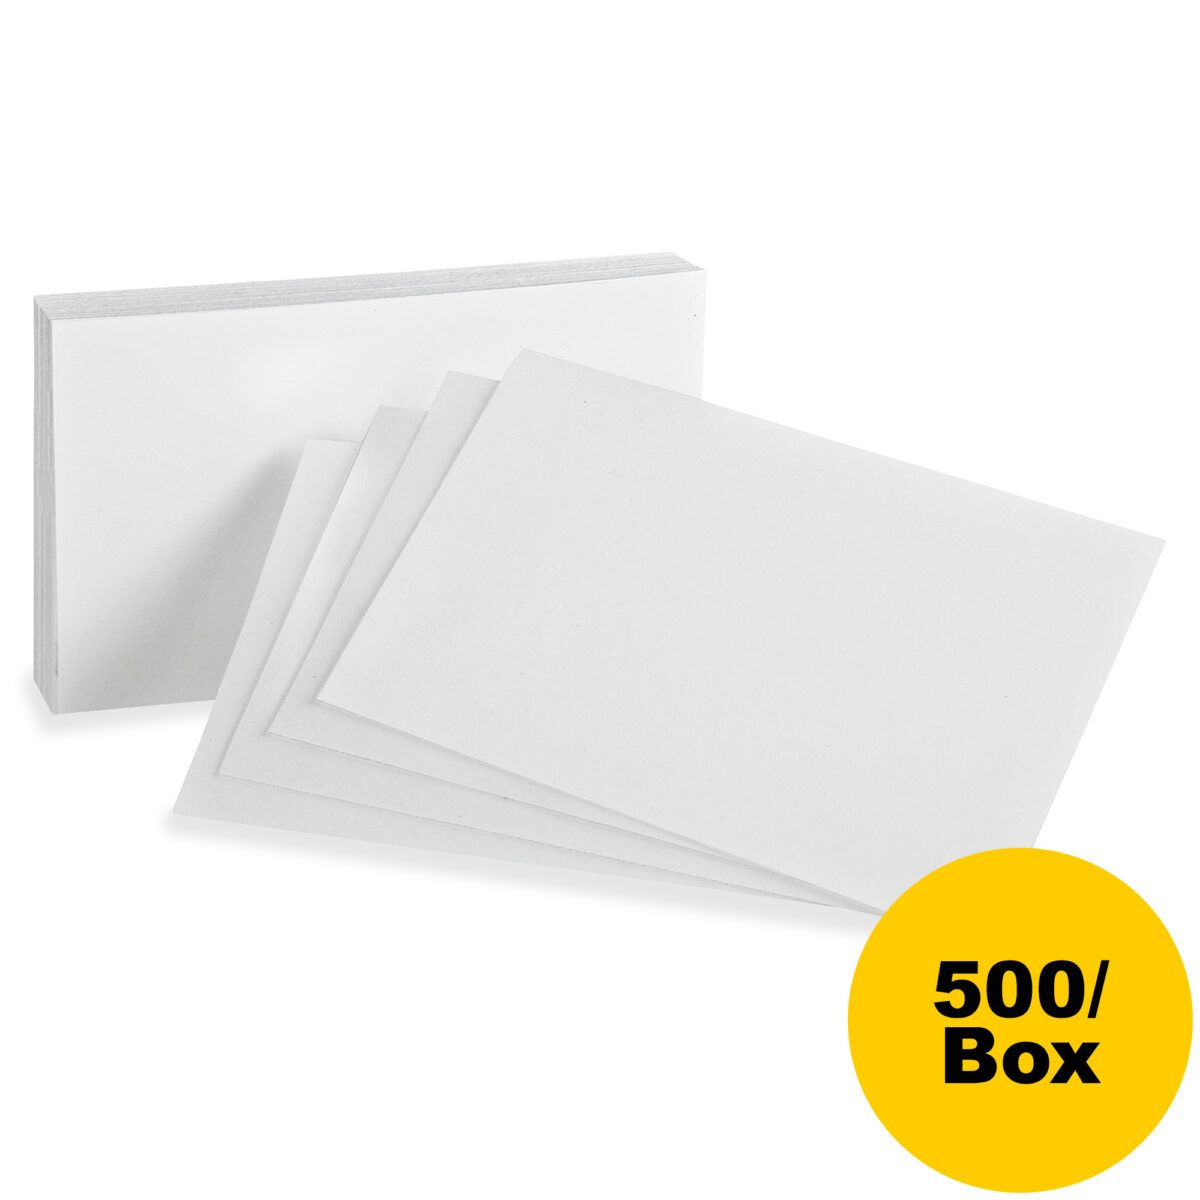 Oxford Printable Index Card 5 X 8 85 Lb Basis Weight 500 Box White Throughout 5 By 8 Index Card Card Template Note Card Template Electronic Cards